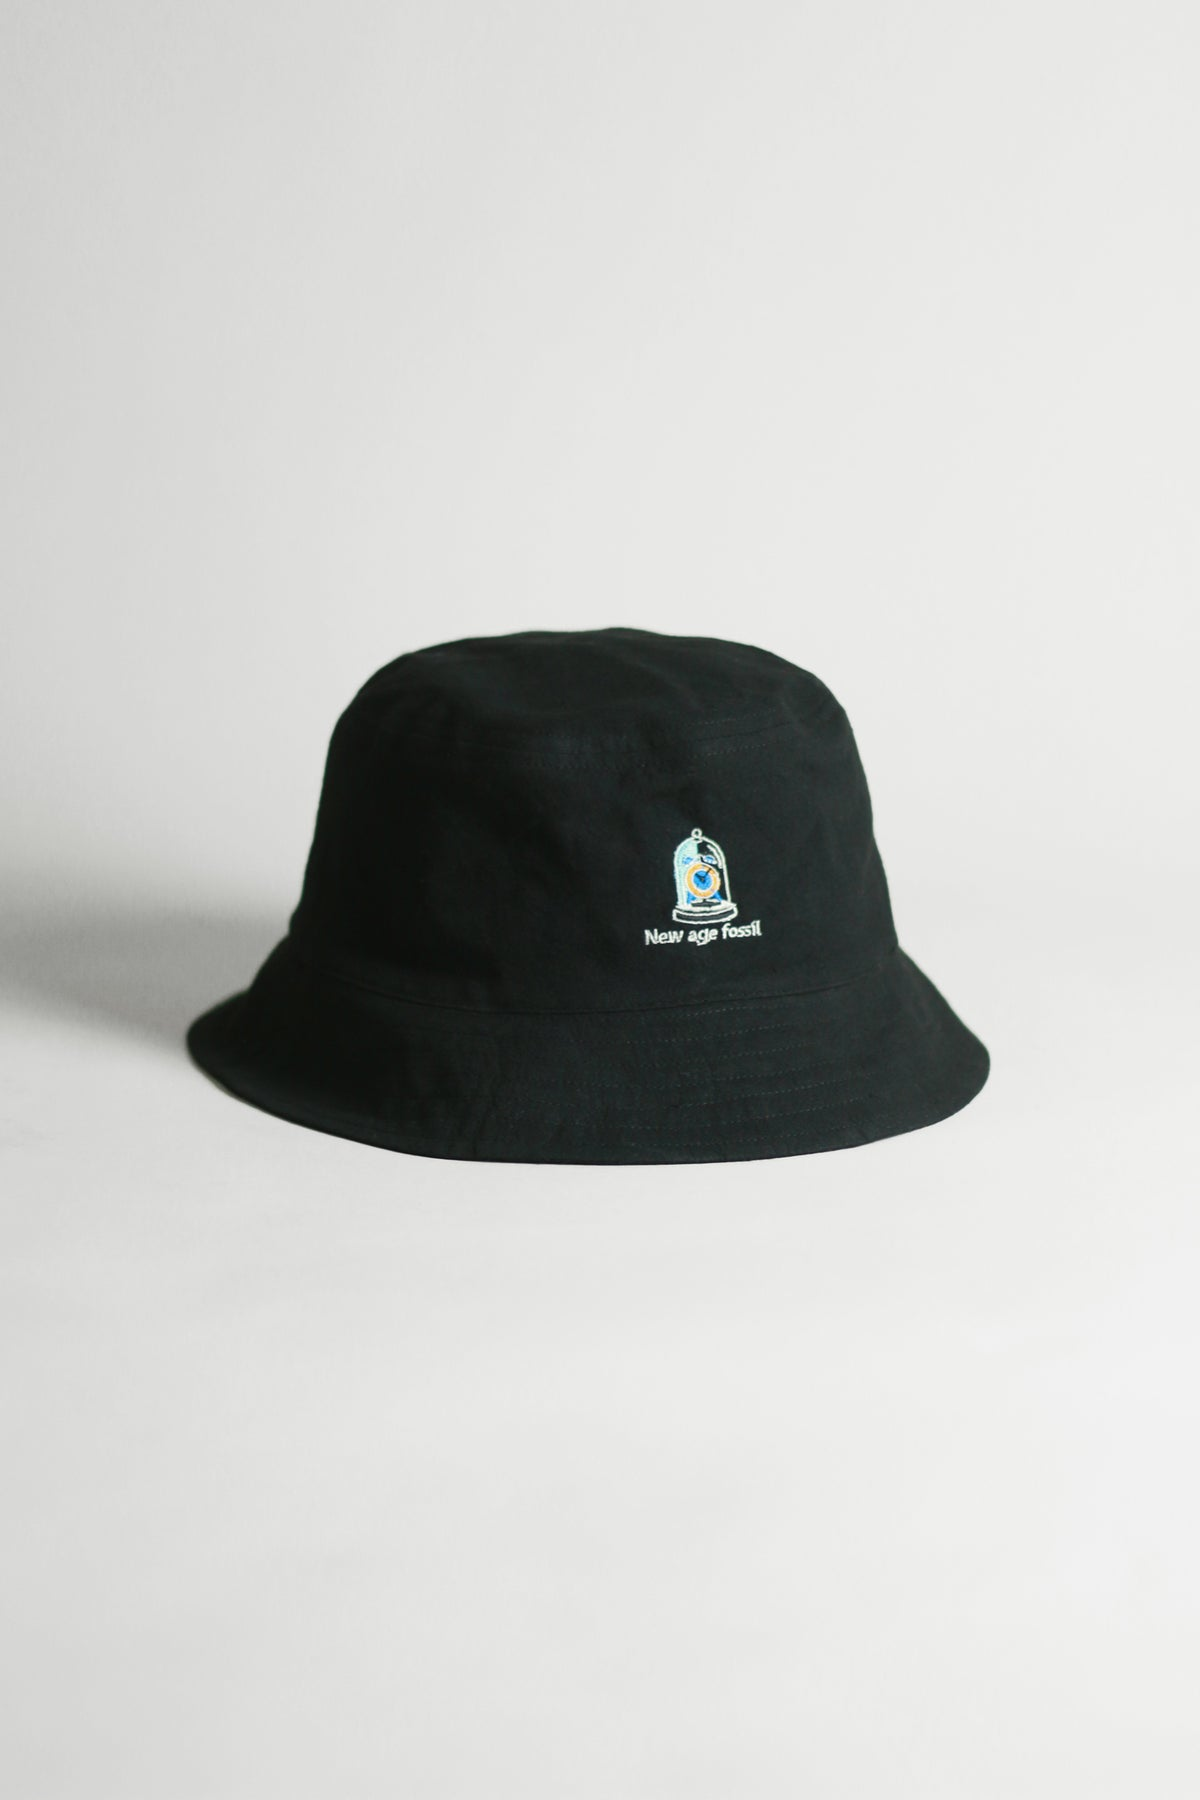 """Graphic Embroidery Tee - """"New Age Fossil"""" Bucket Hat"""